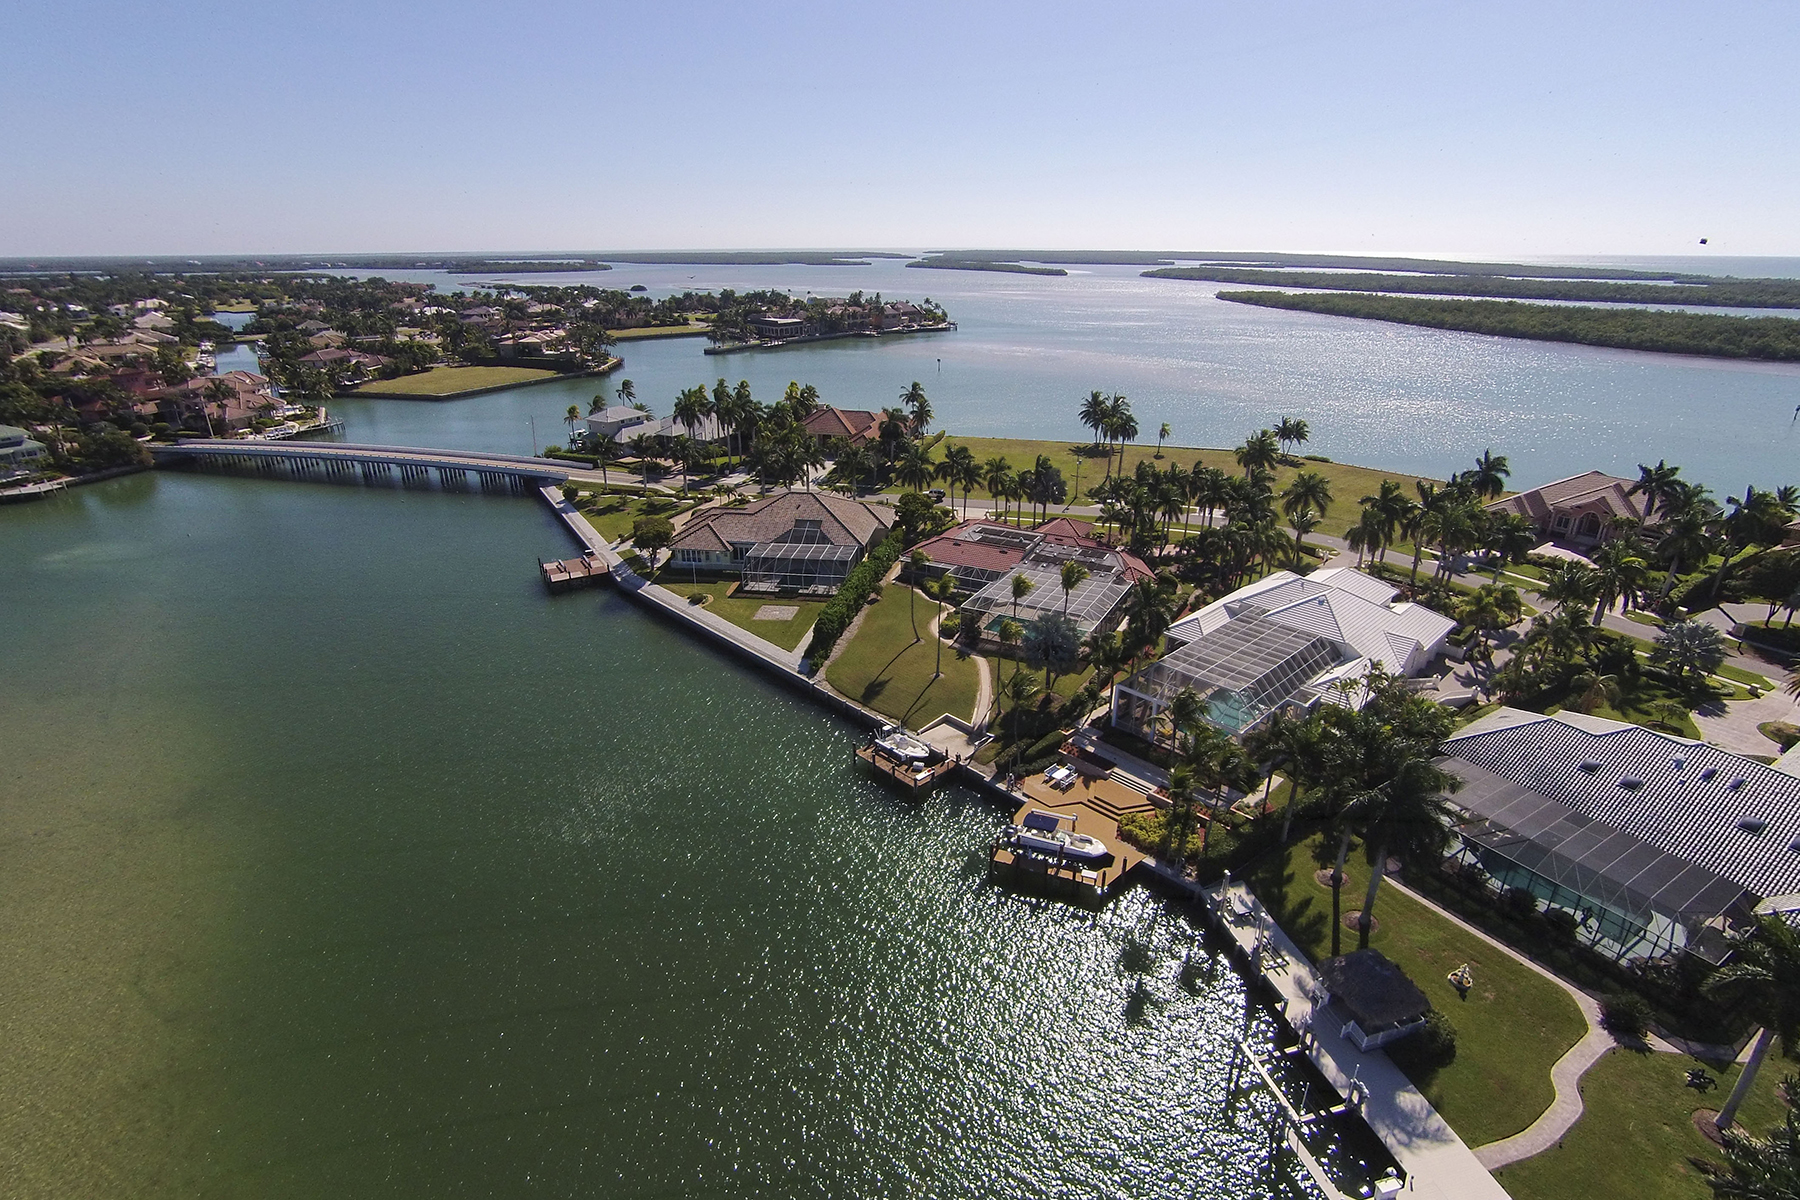 Single Family Home for Sale at MARCO ISLAN D- CAXAMBAS CT 1470 Caxambas Ct Marco Island, Florida, 34145 United States